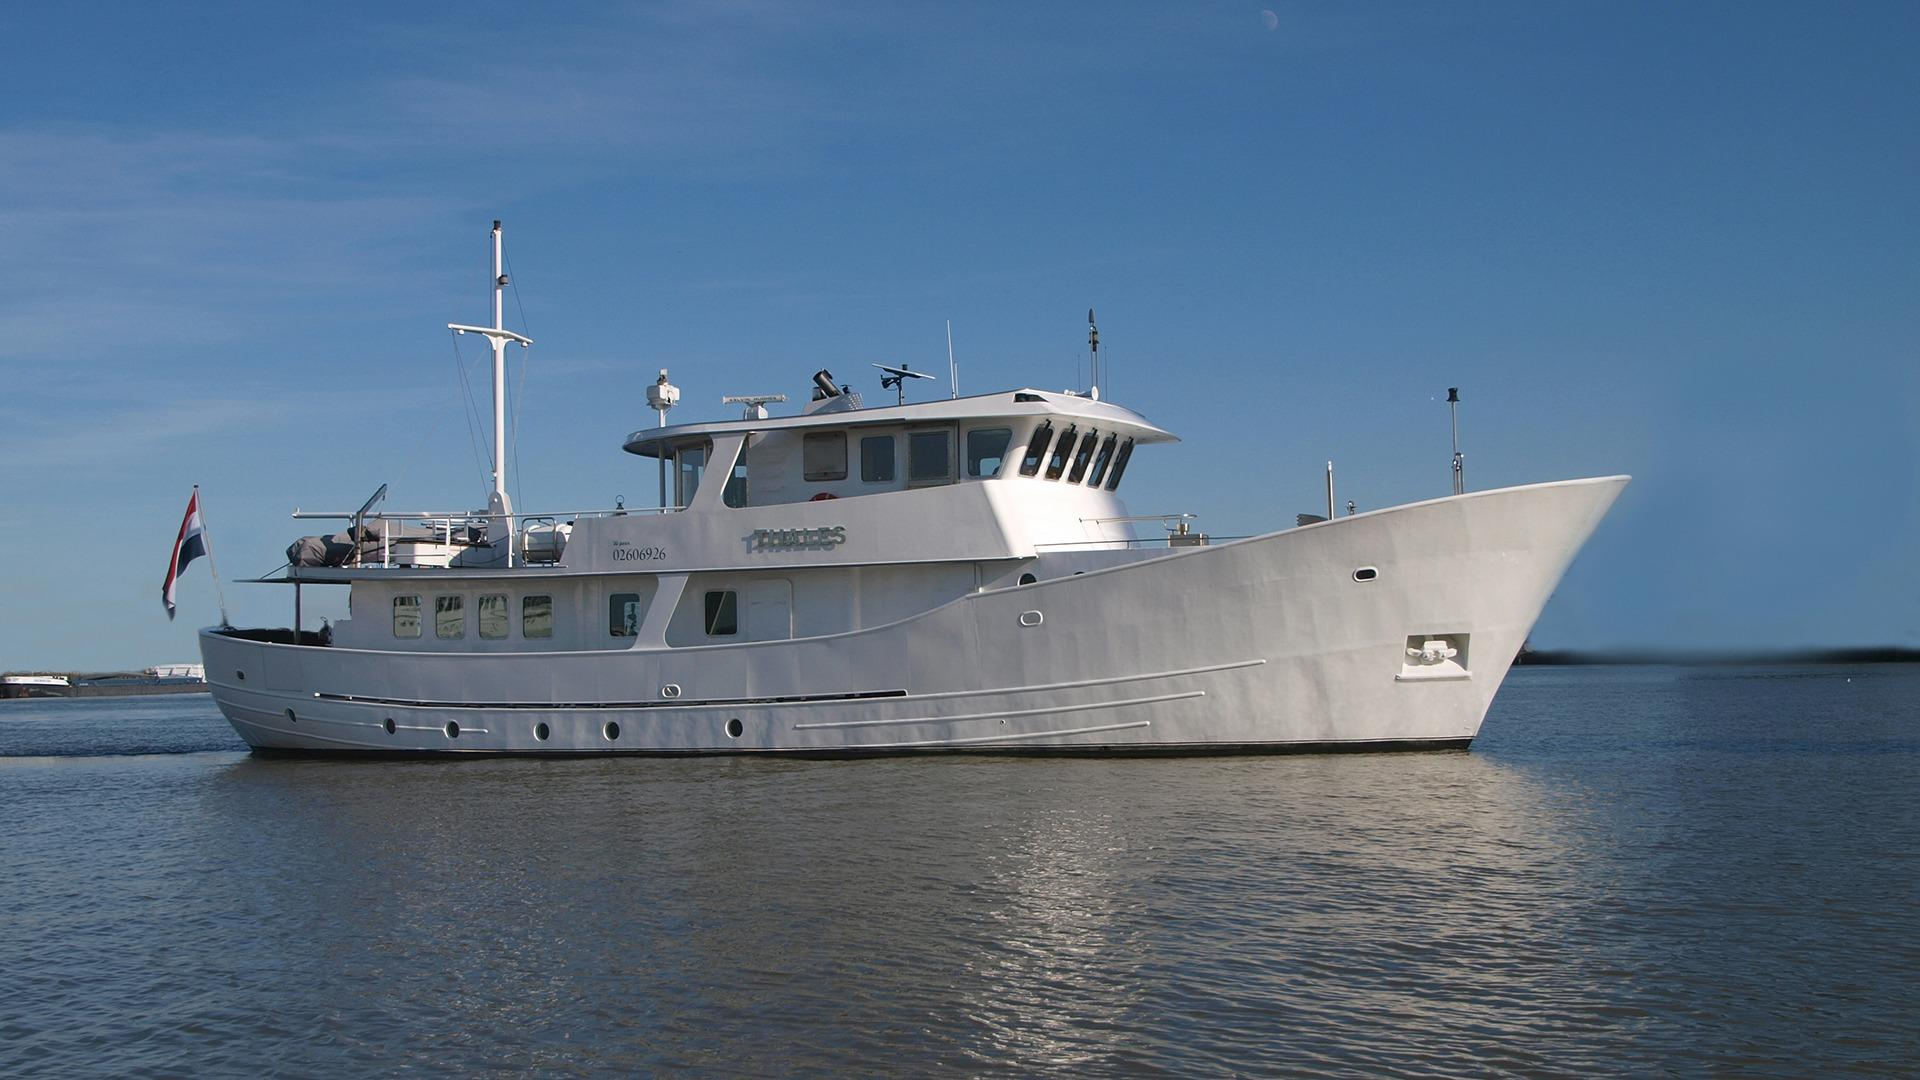 2003 Metz Roode Trawler Charter Power Boat For Sale - www.yachtworld.com